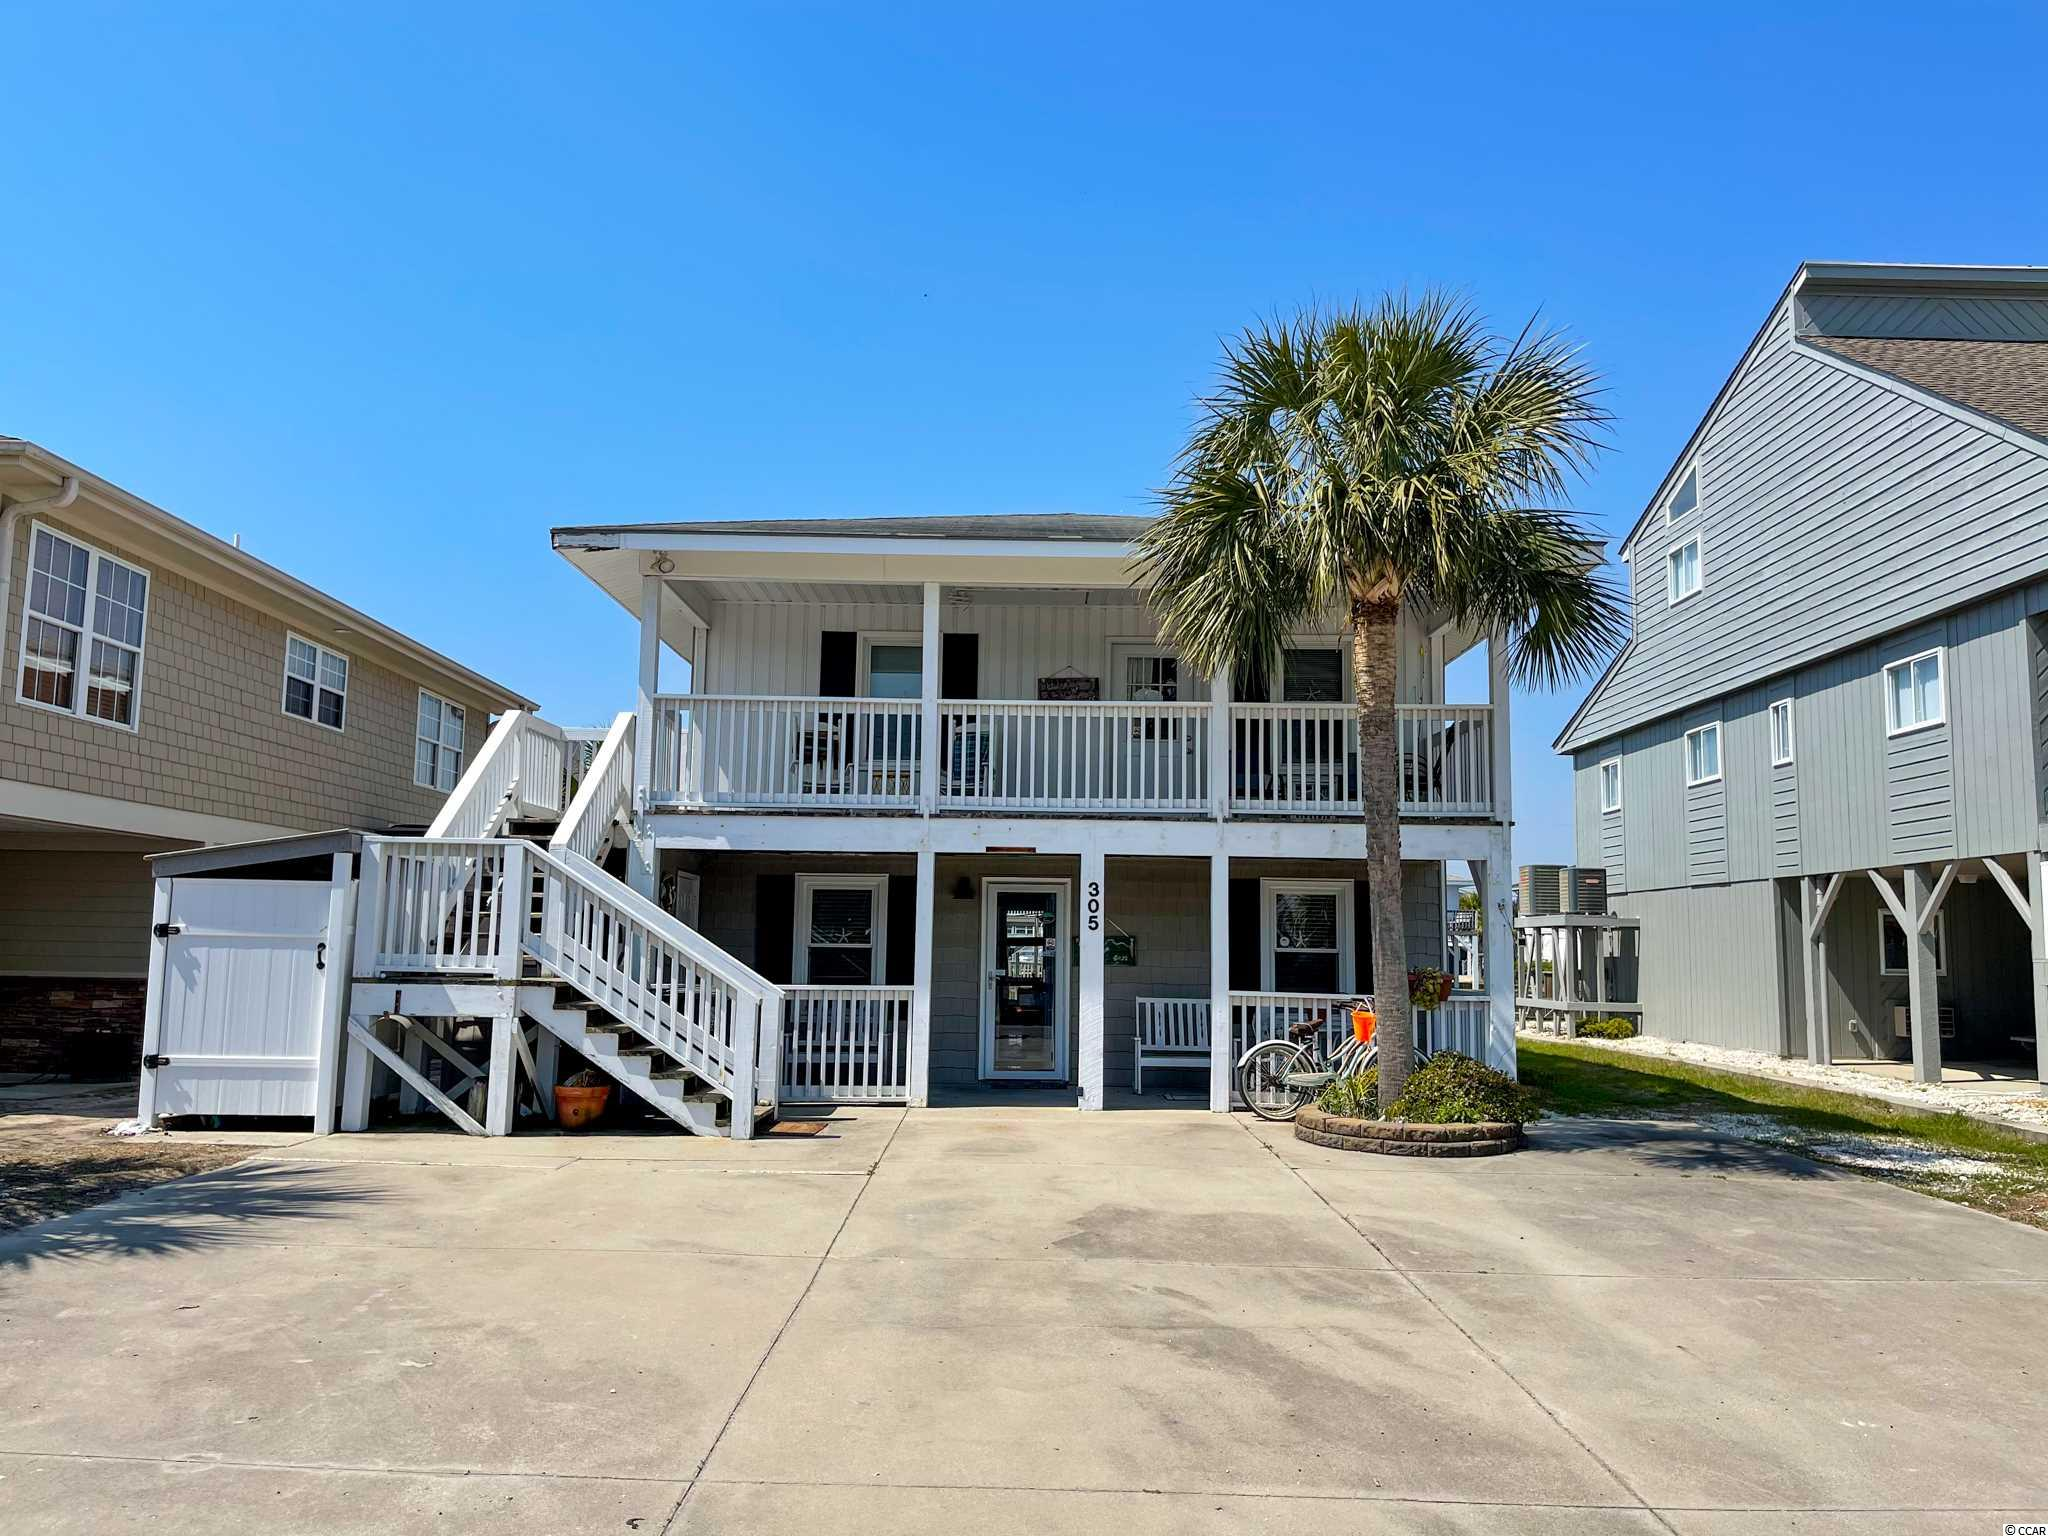 Located in walking distance ,only one and a half block away from the Ocean in Cherry Grove Beach ,SC. This Unique Raised Beach Home features two full stories, 3 bedrooms and 2 full baths on the first floor and 2 bedrooms and 2 baths on the second floor,2 full kitchens, living room and front and back porch / patio area on each level. The house is sited on the water channel with a private Boat ramp (very rare) and brand new Dock for all the entertainments, fishing ,kayaking or simply enjoying cup of coffee on it. A lot of updates have been made to this unique beach house: HVAC- 2020, Roof -2017;Water Heater-2020,New PVC wall, lifted electricity and brand new appliances on the first floor.  Great Investment Opportunity -the home is divided as a Duplex and has 2 separate entrances on both floors from the front and the back of the house. There are many options with this property to use the entire home with plenty of privacy for everyone to enjoy the Beach / Vacation lifestyle ,rent  both floors ,or use one level for personal use and rent the other level to cover the expenses.  Selling the home fully FURNISHED.